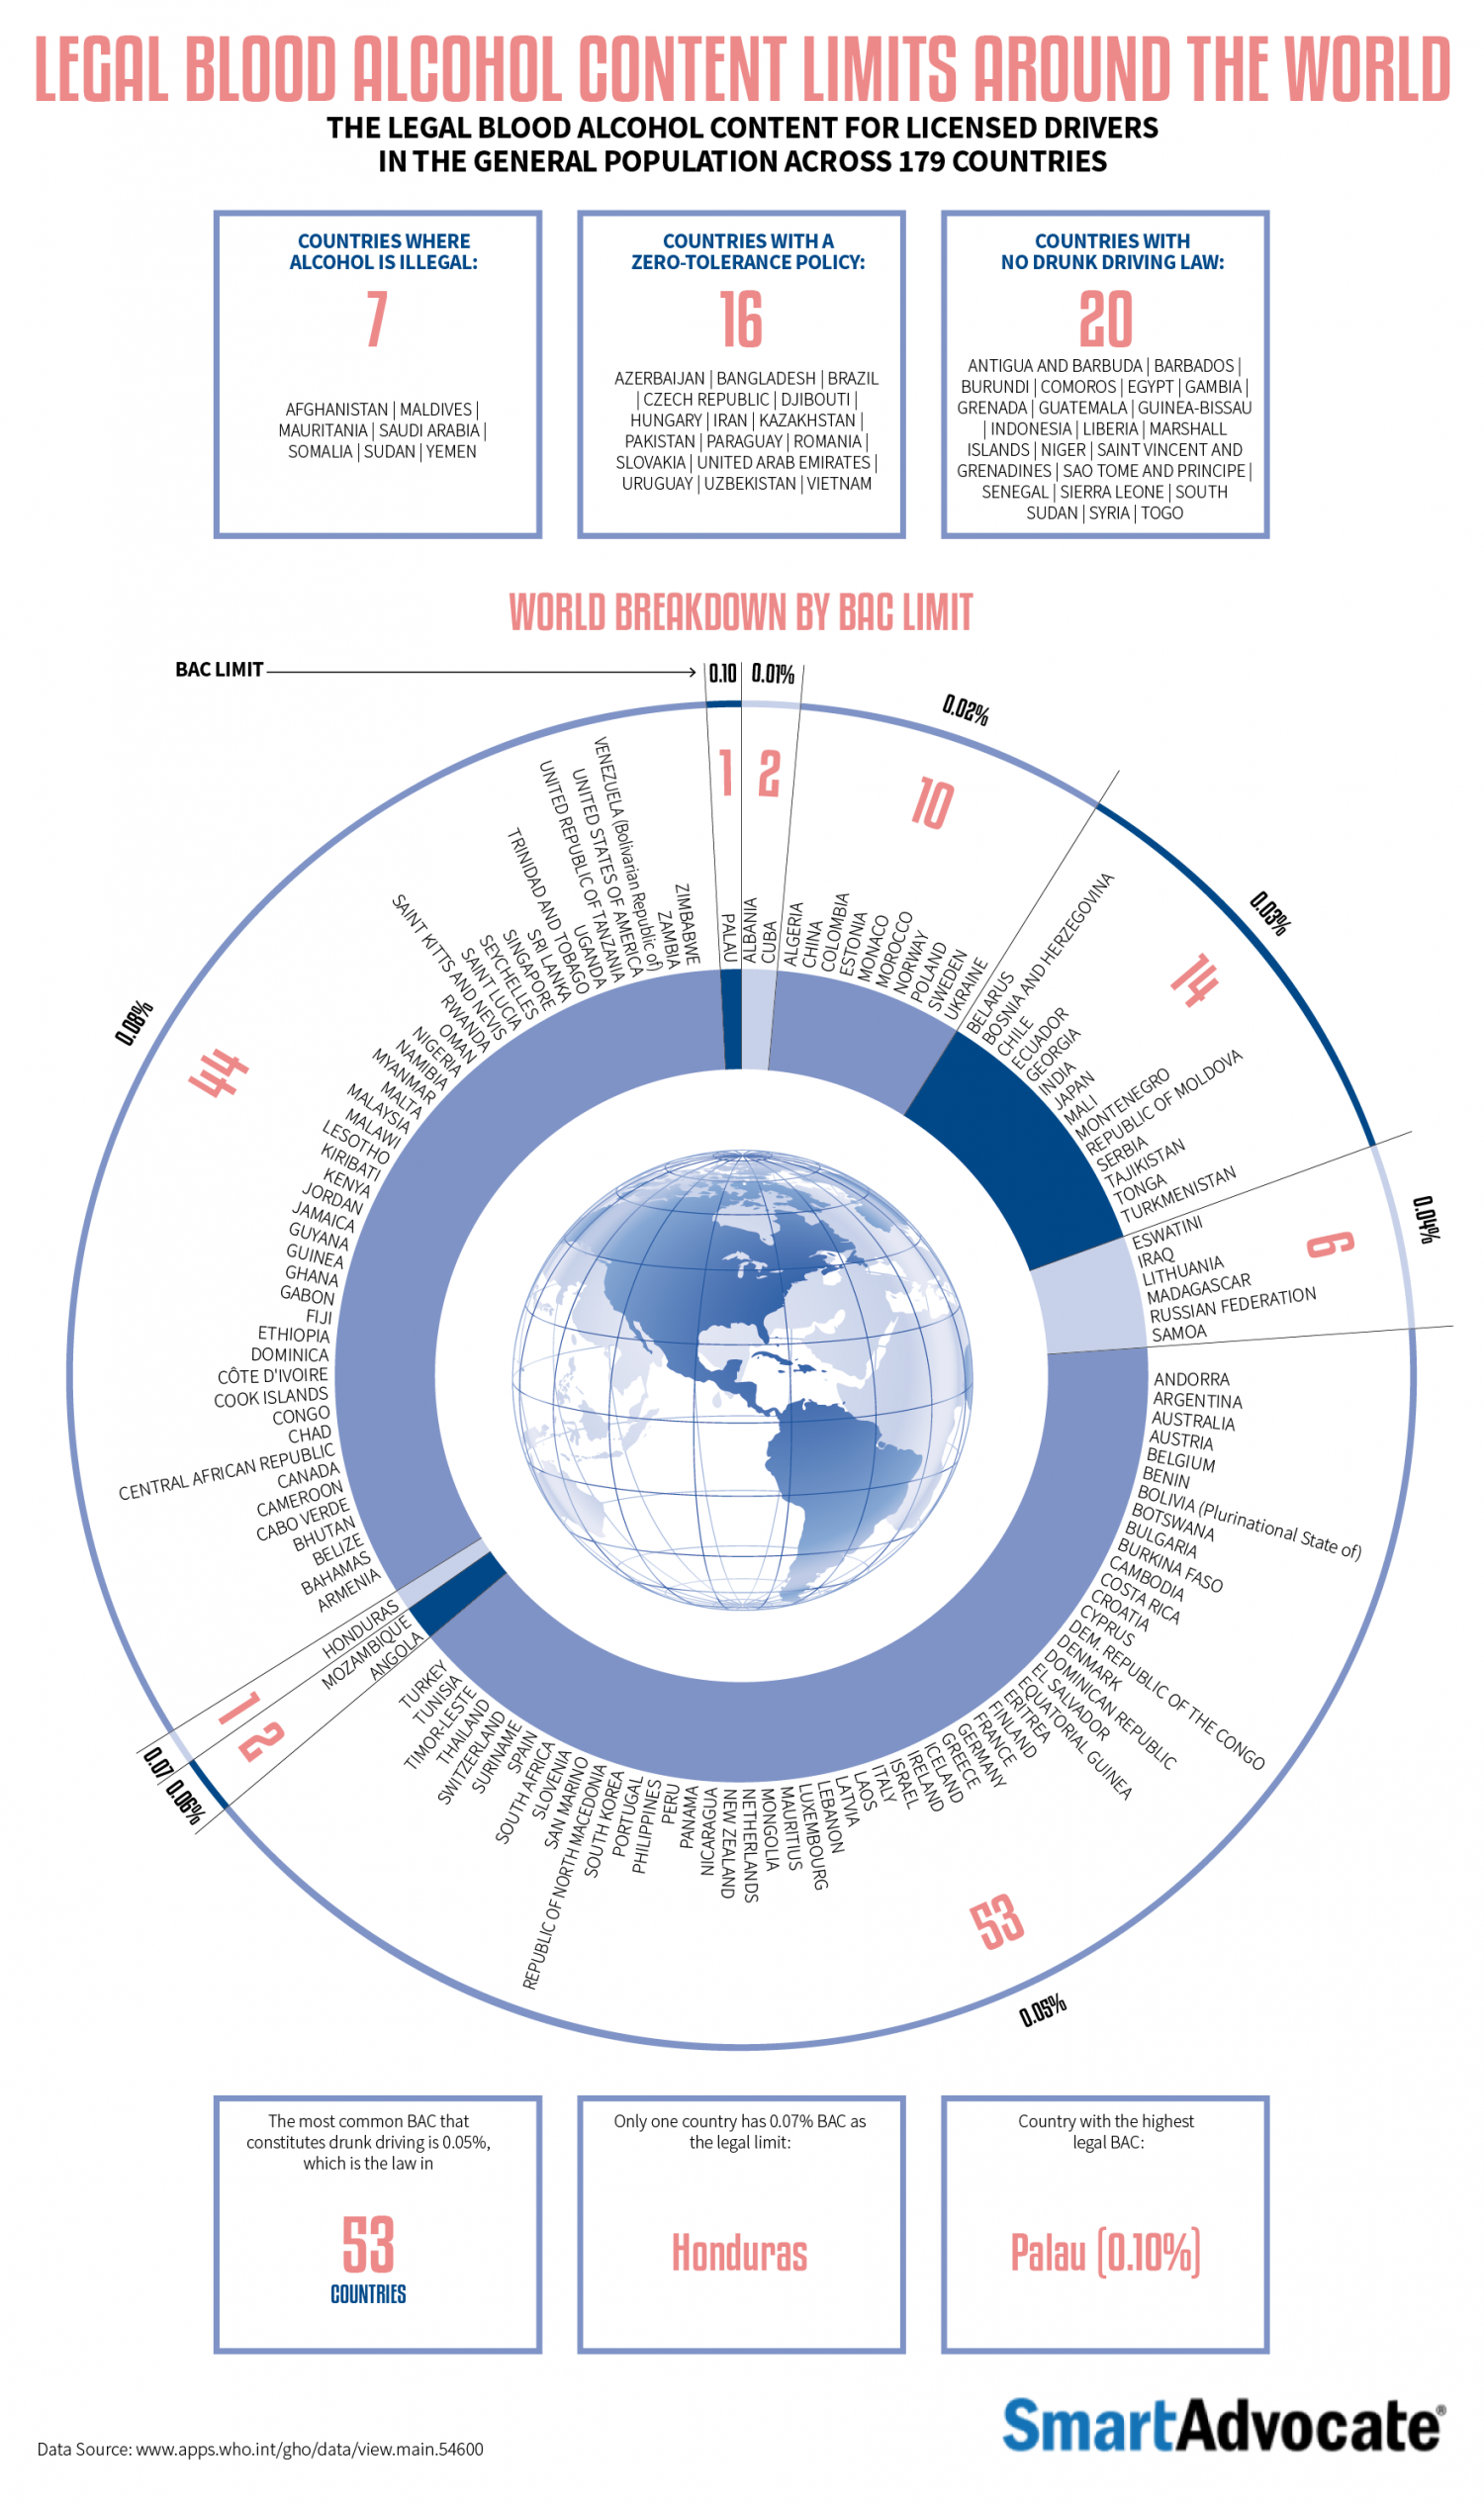 The Legal Blood Alcohol Content Limits for Drivers Around the World Infographic